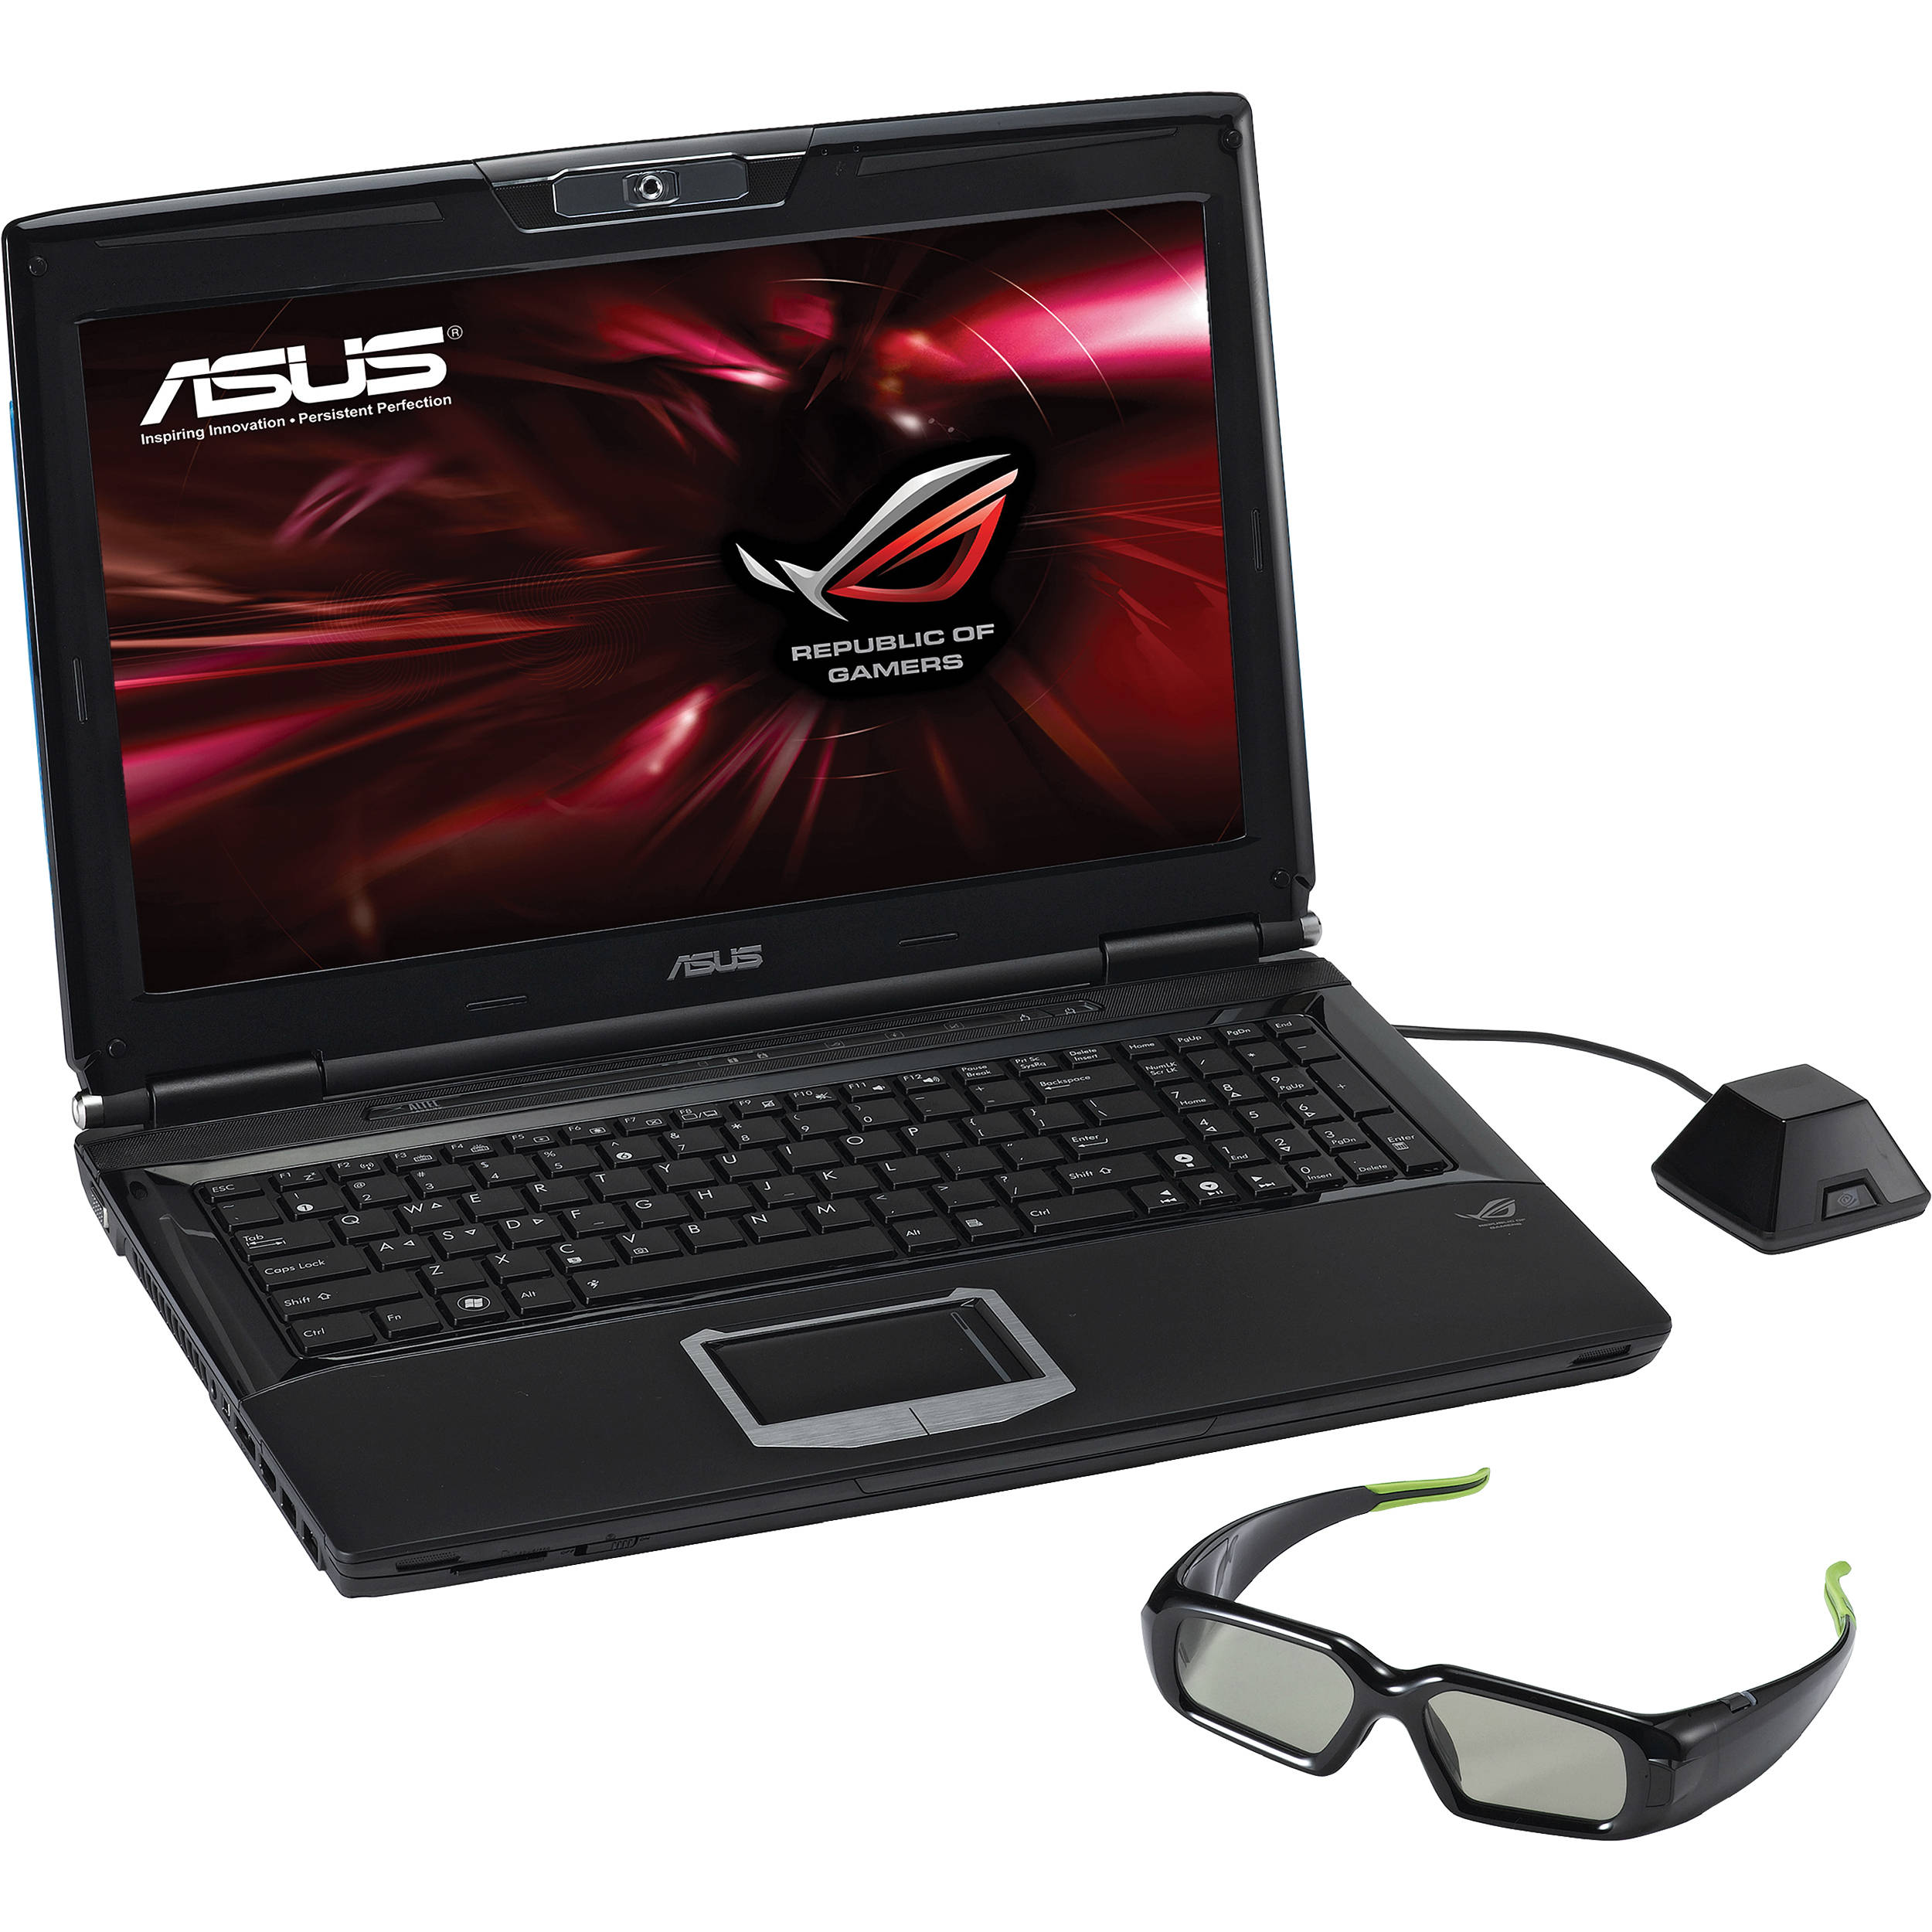 ASUS G51J NOTEBOOK NVIDIA GRAPHICS DRIVERS PC